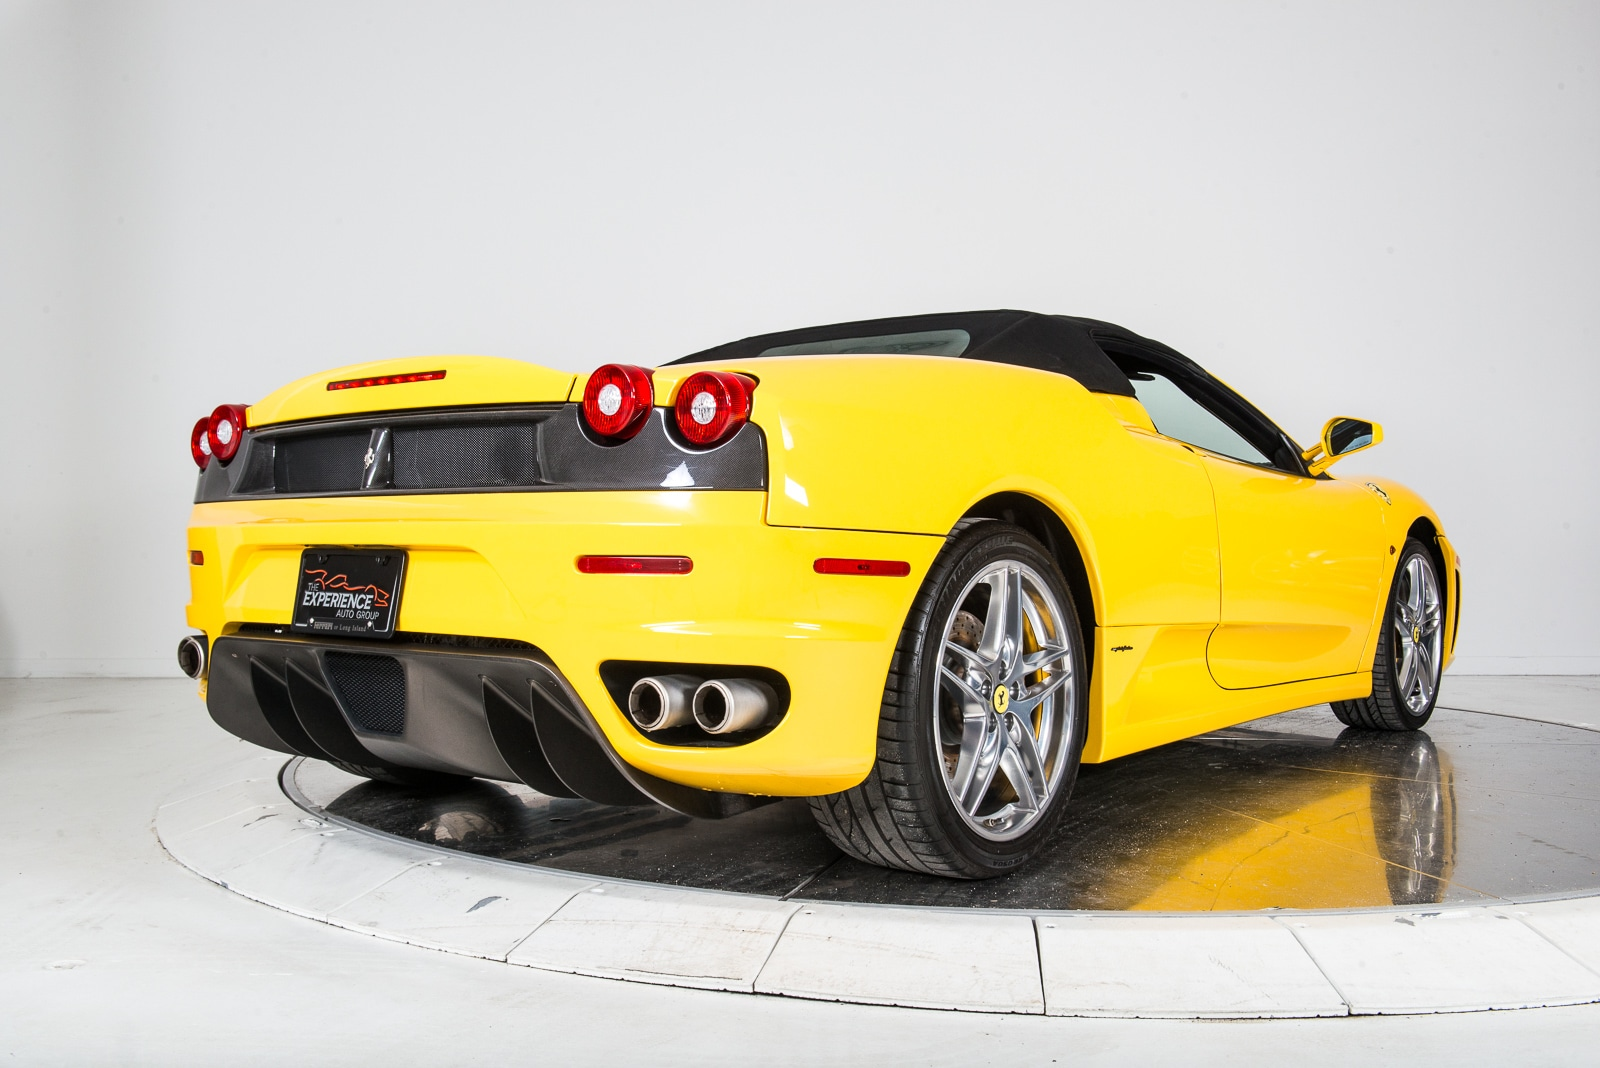 used 2007 ferrari f430 spider f1 for sale plainview near long island ny vin zffew59a070158119. Black Bedroom Furniture Sets. Home Design Ideas